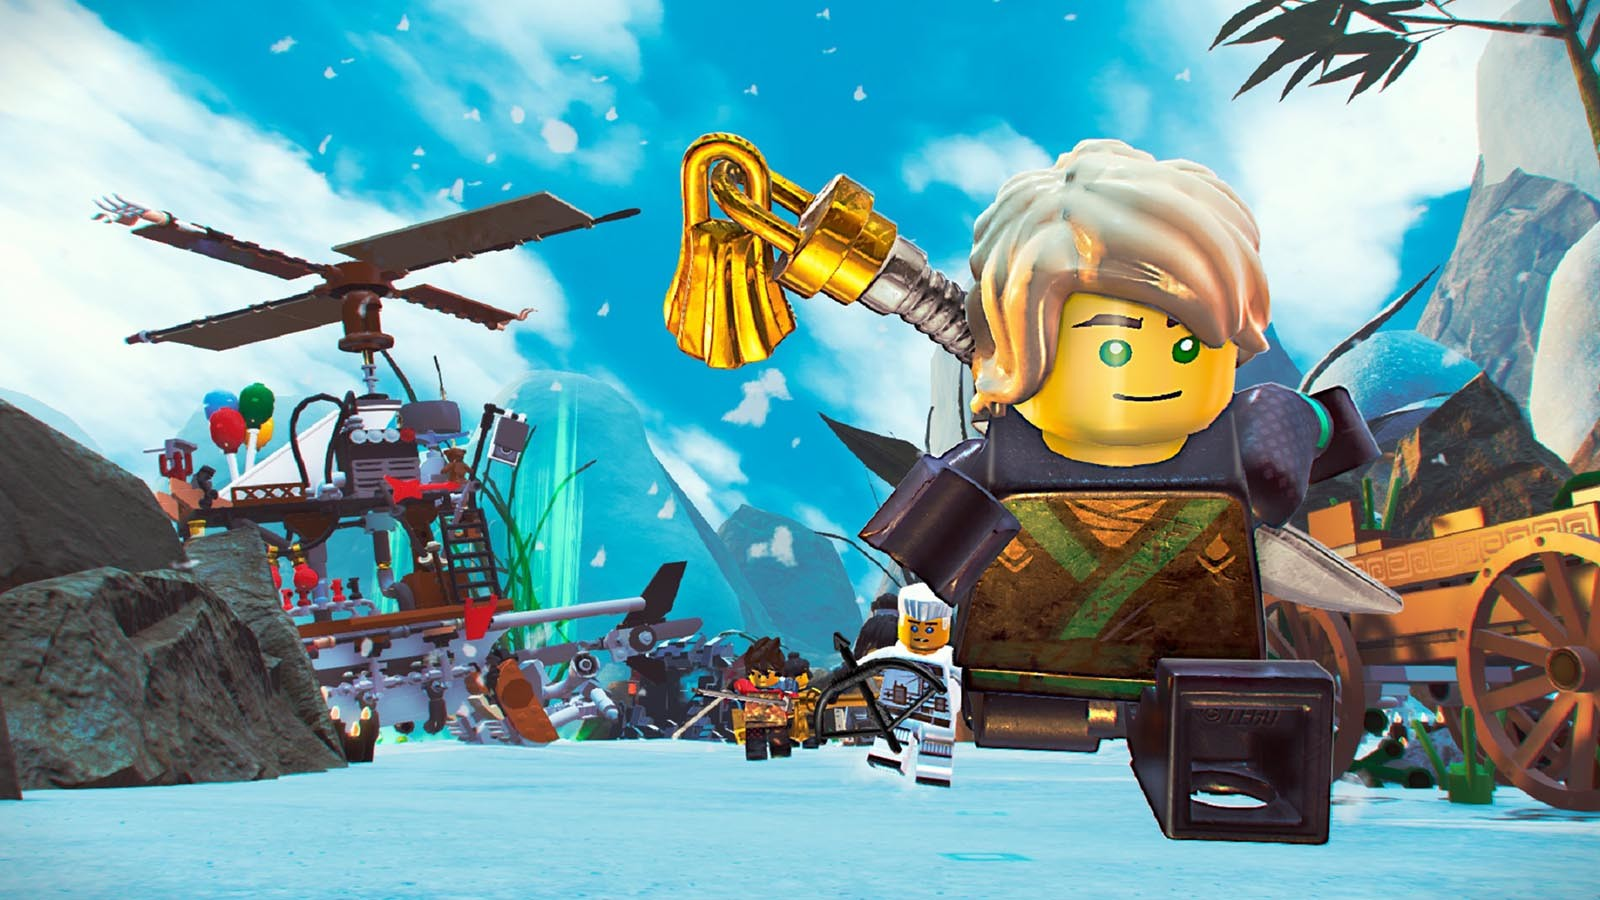 The Lego Ninjago Movie The Lego Ninjago Movie Videogame Steam Cd Key For Pc Buy Now